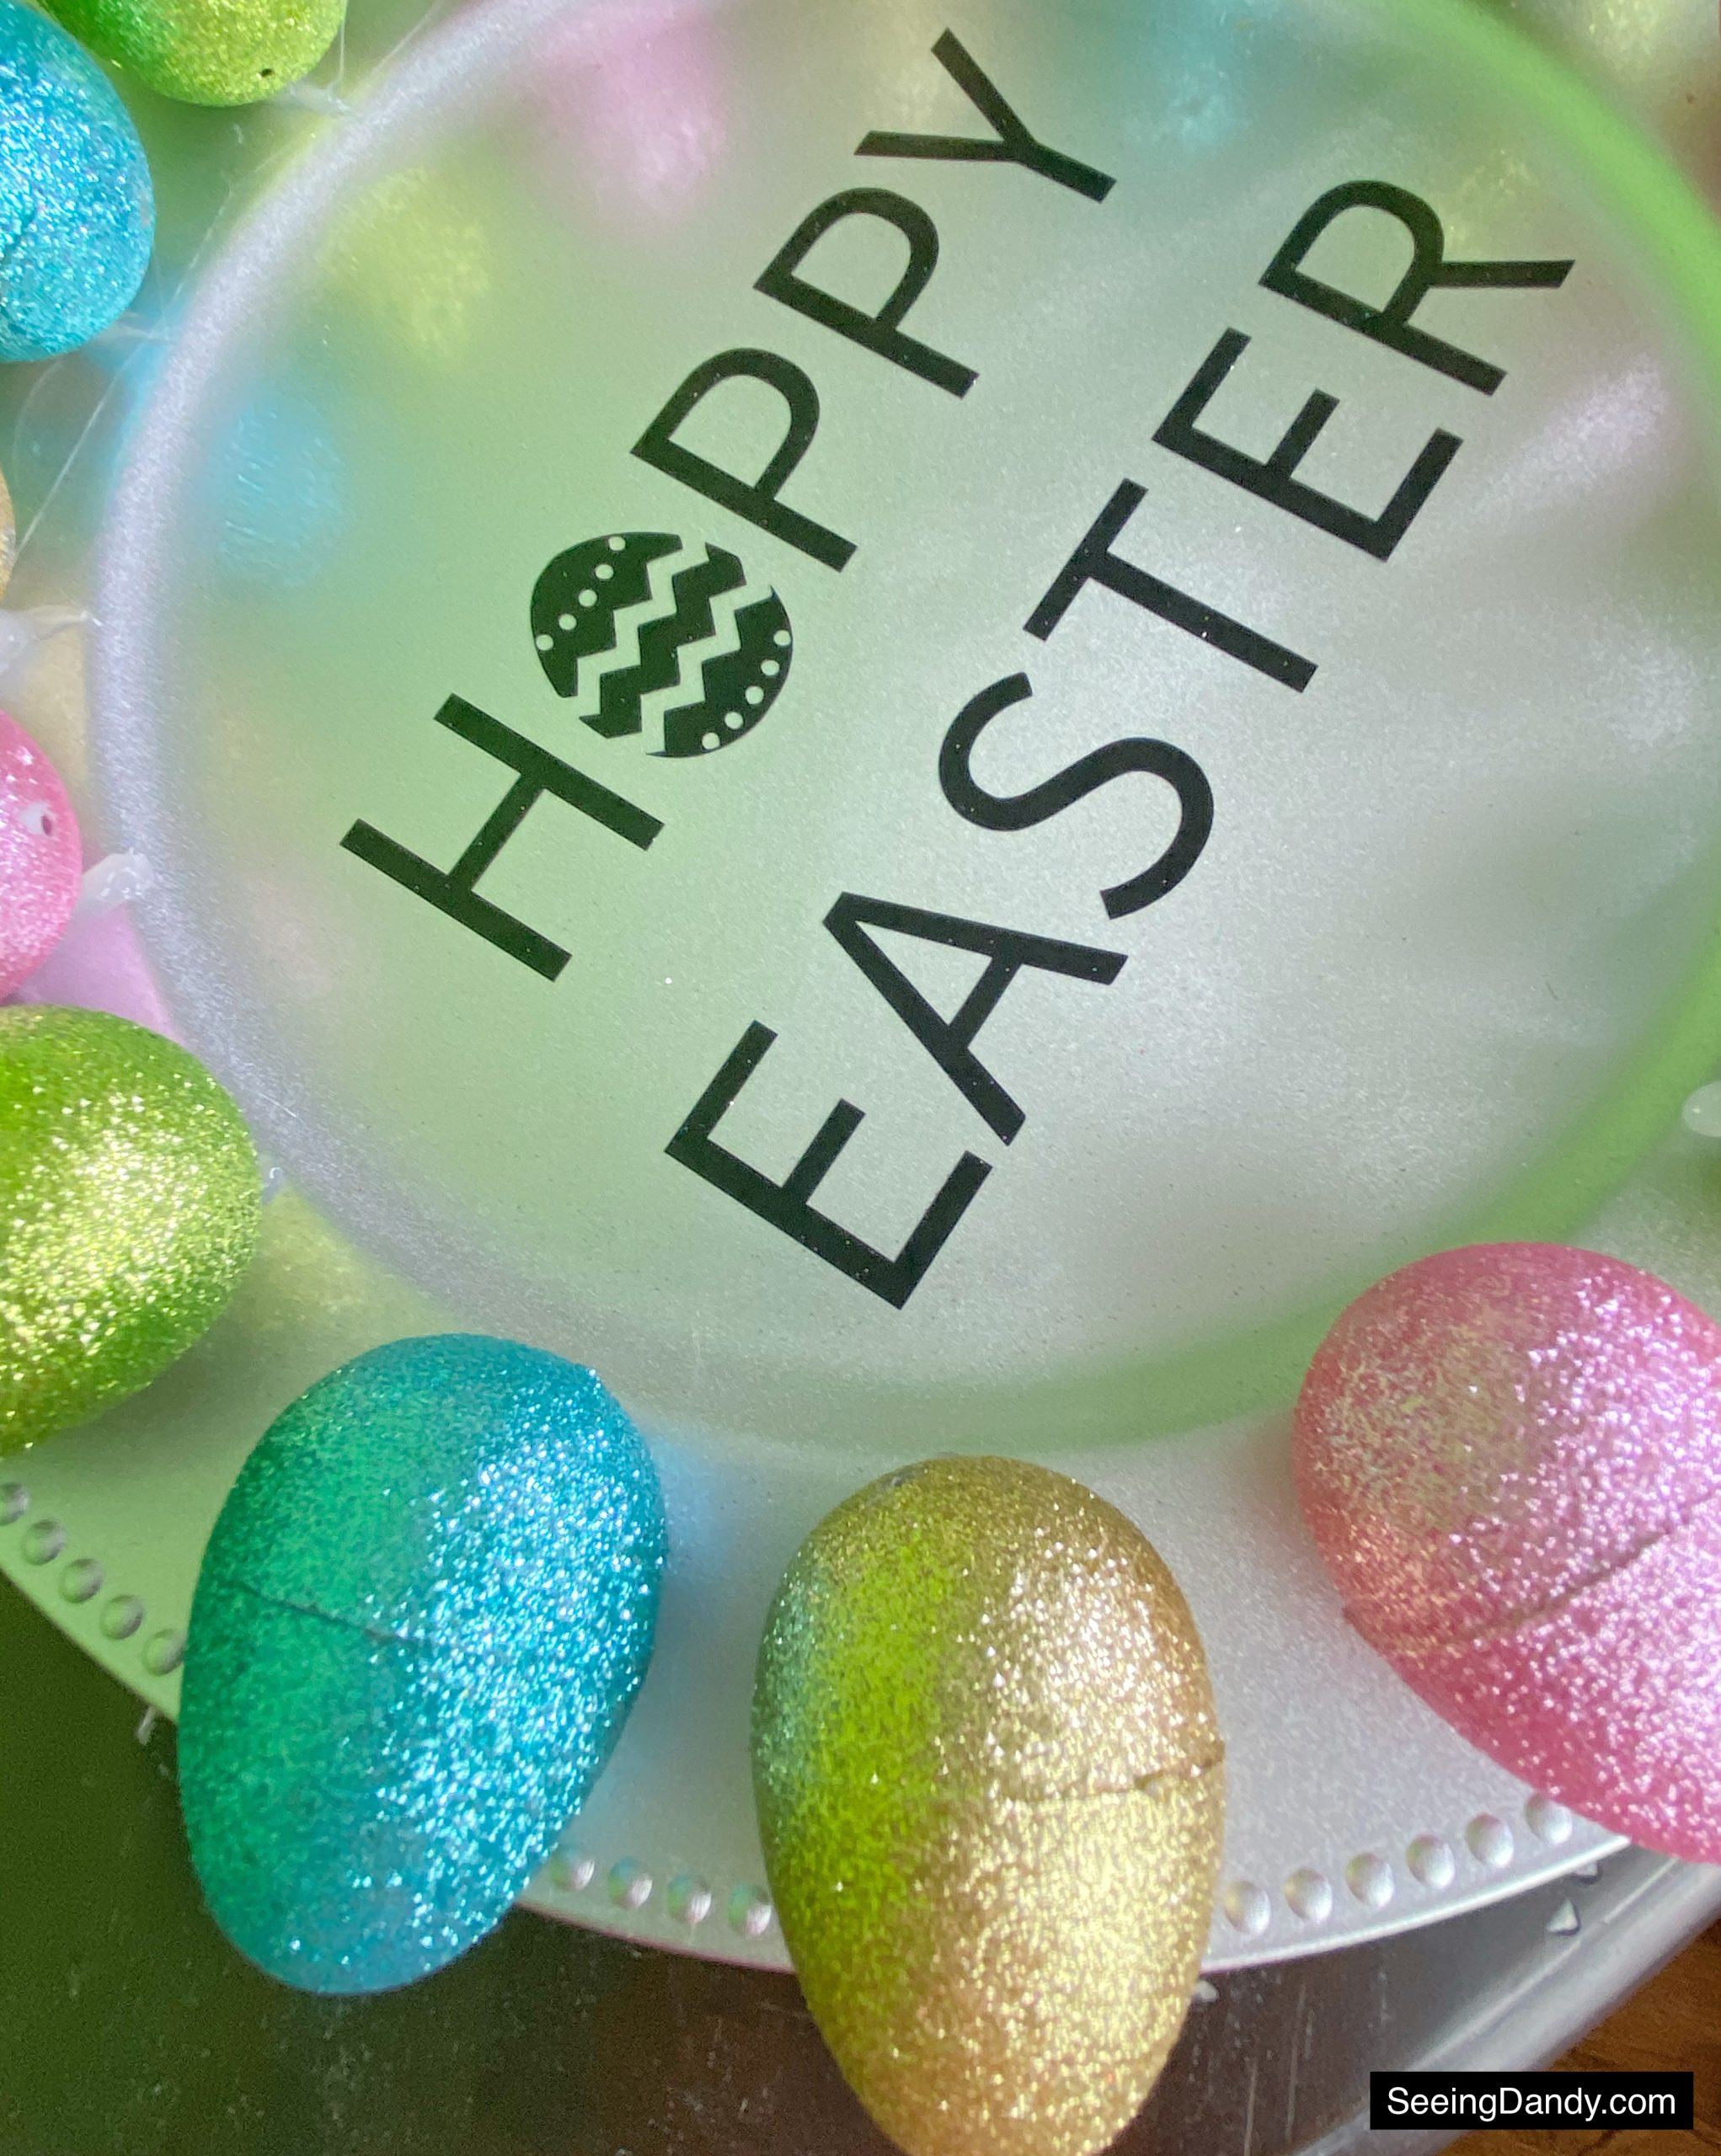 vinyl silhouette svg file, silver plastic charger plate, hoppy easter svg file, dollar tree craft, happy easter svg file, dollar tree giltter easter eggs